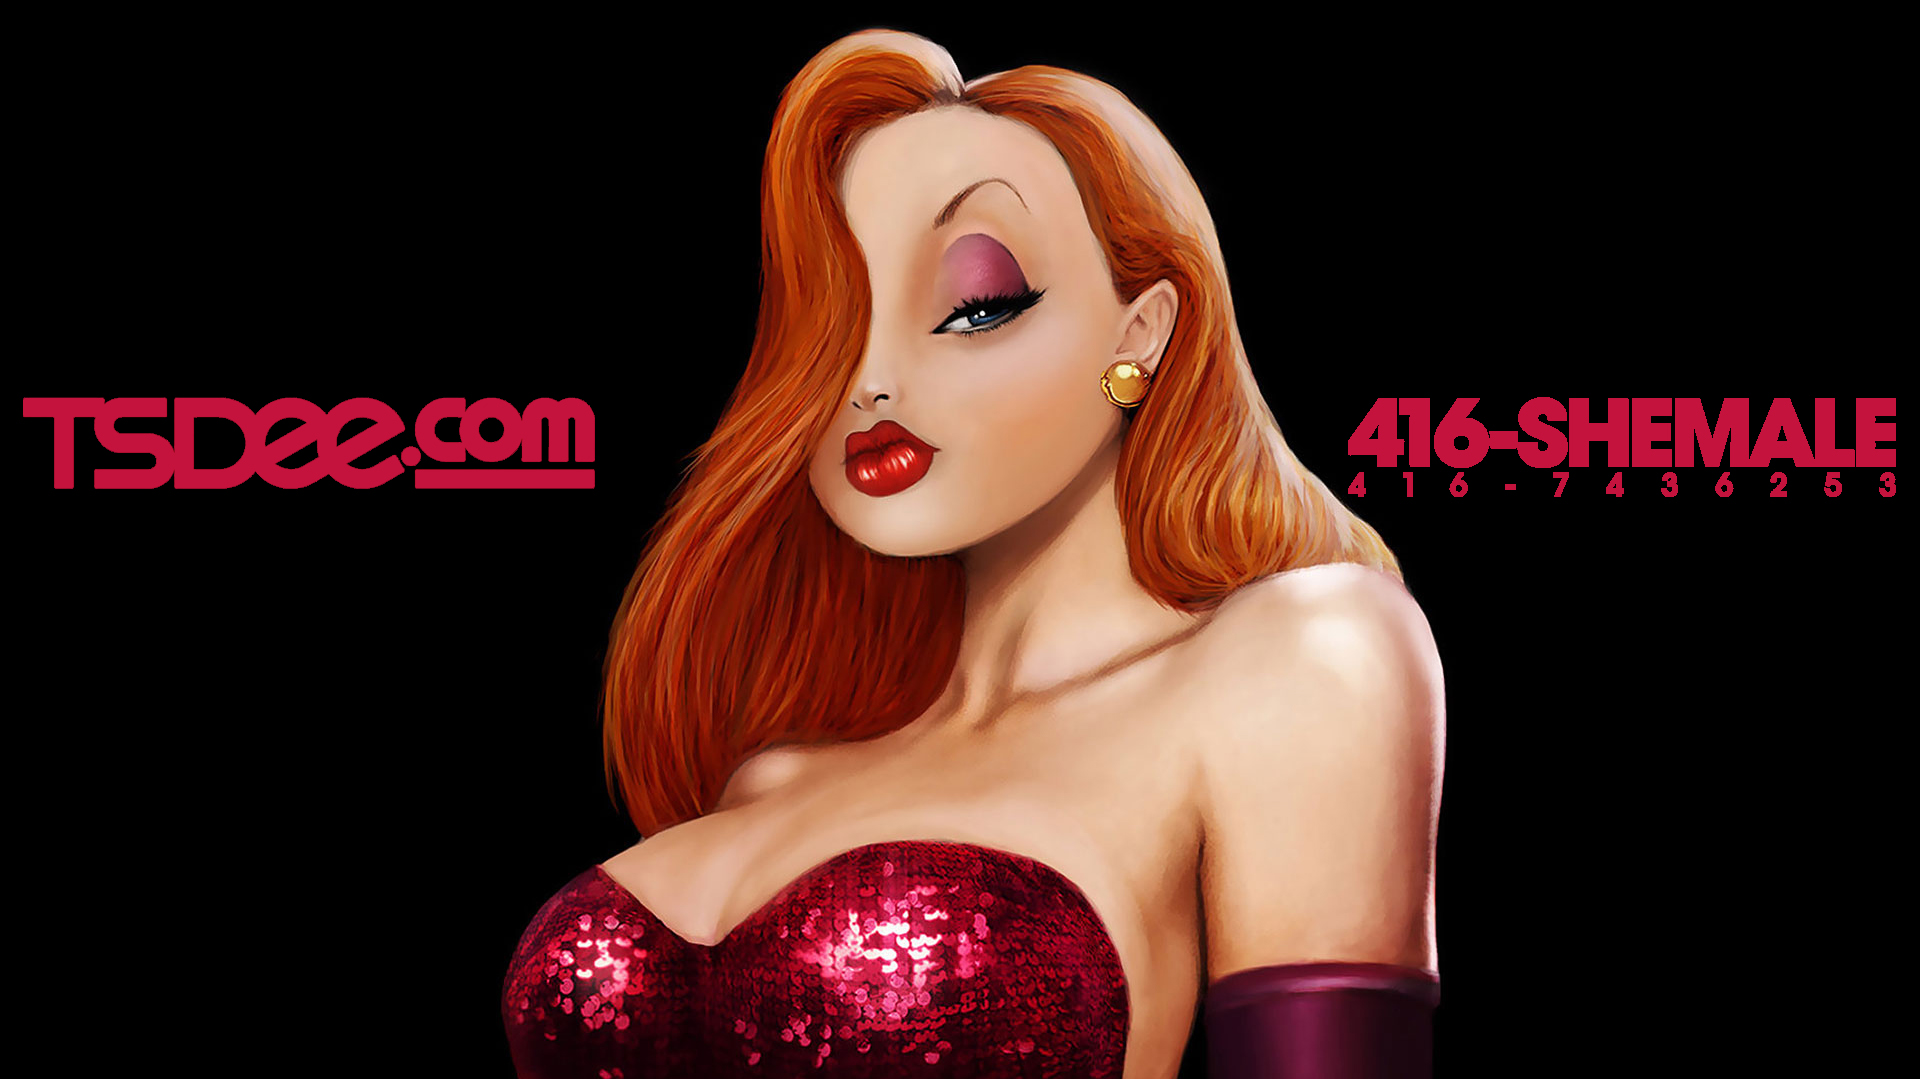 Jessica Rabbit Background and landing page